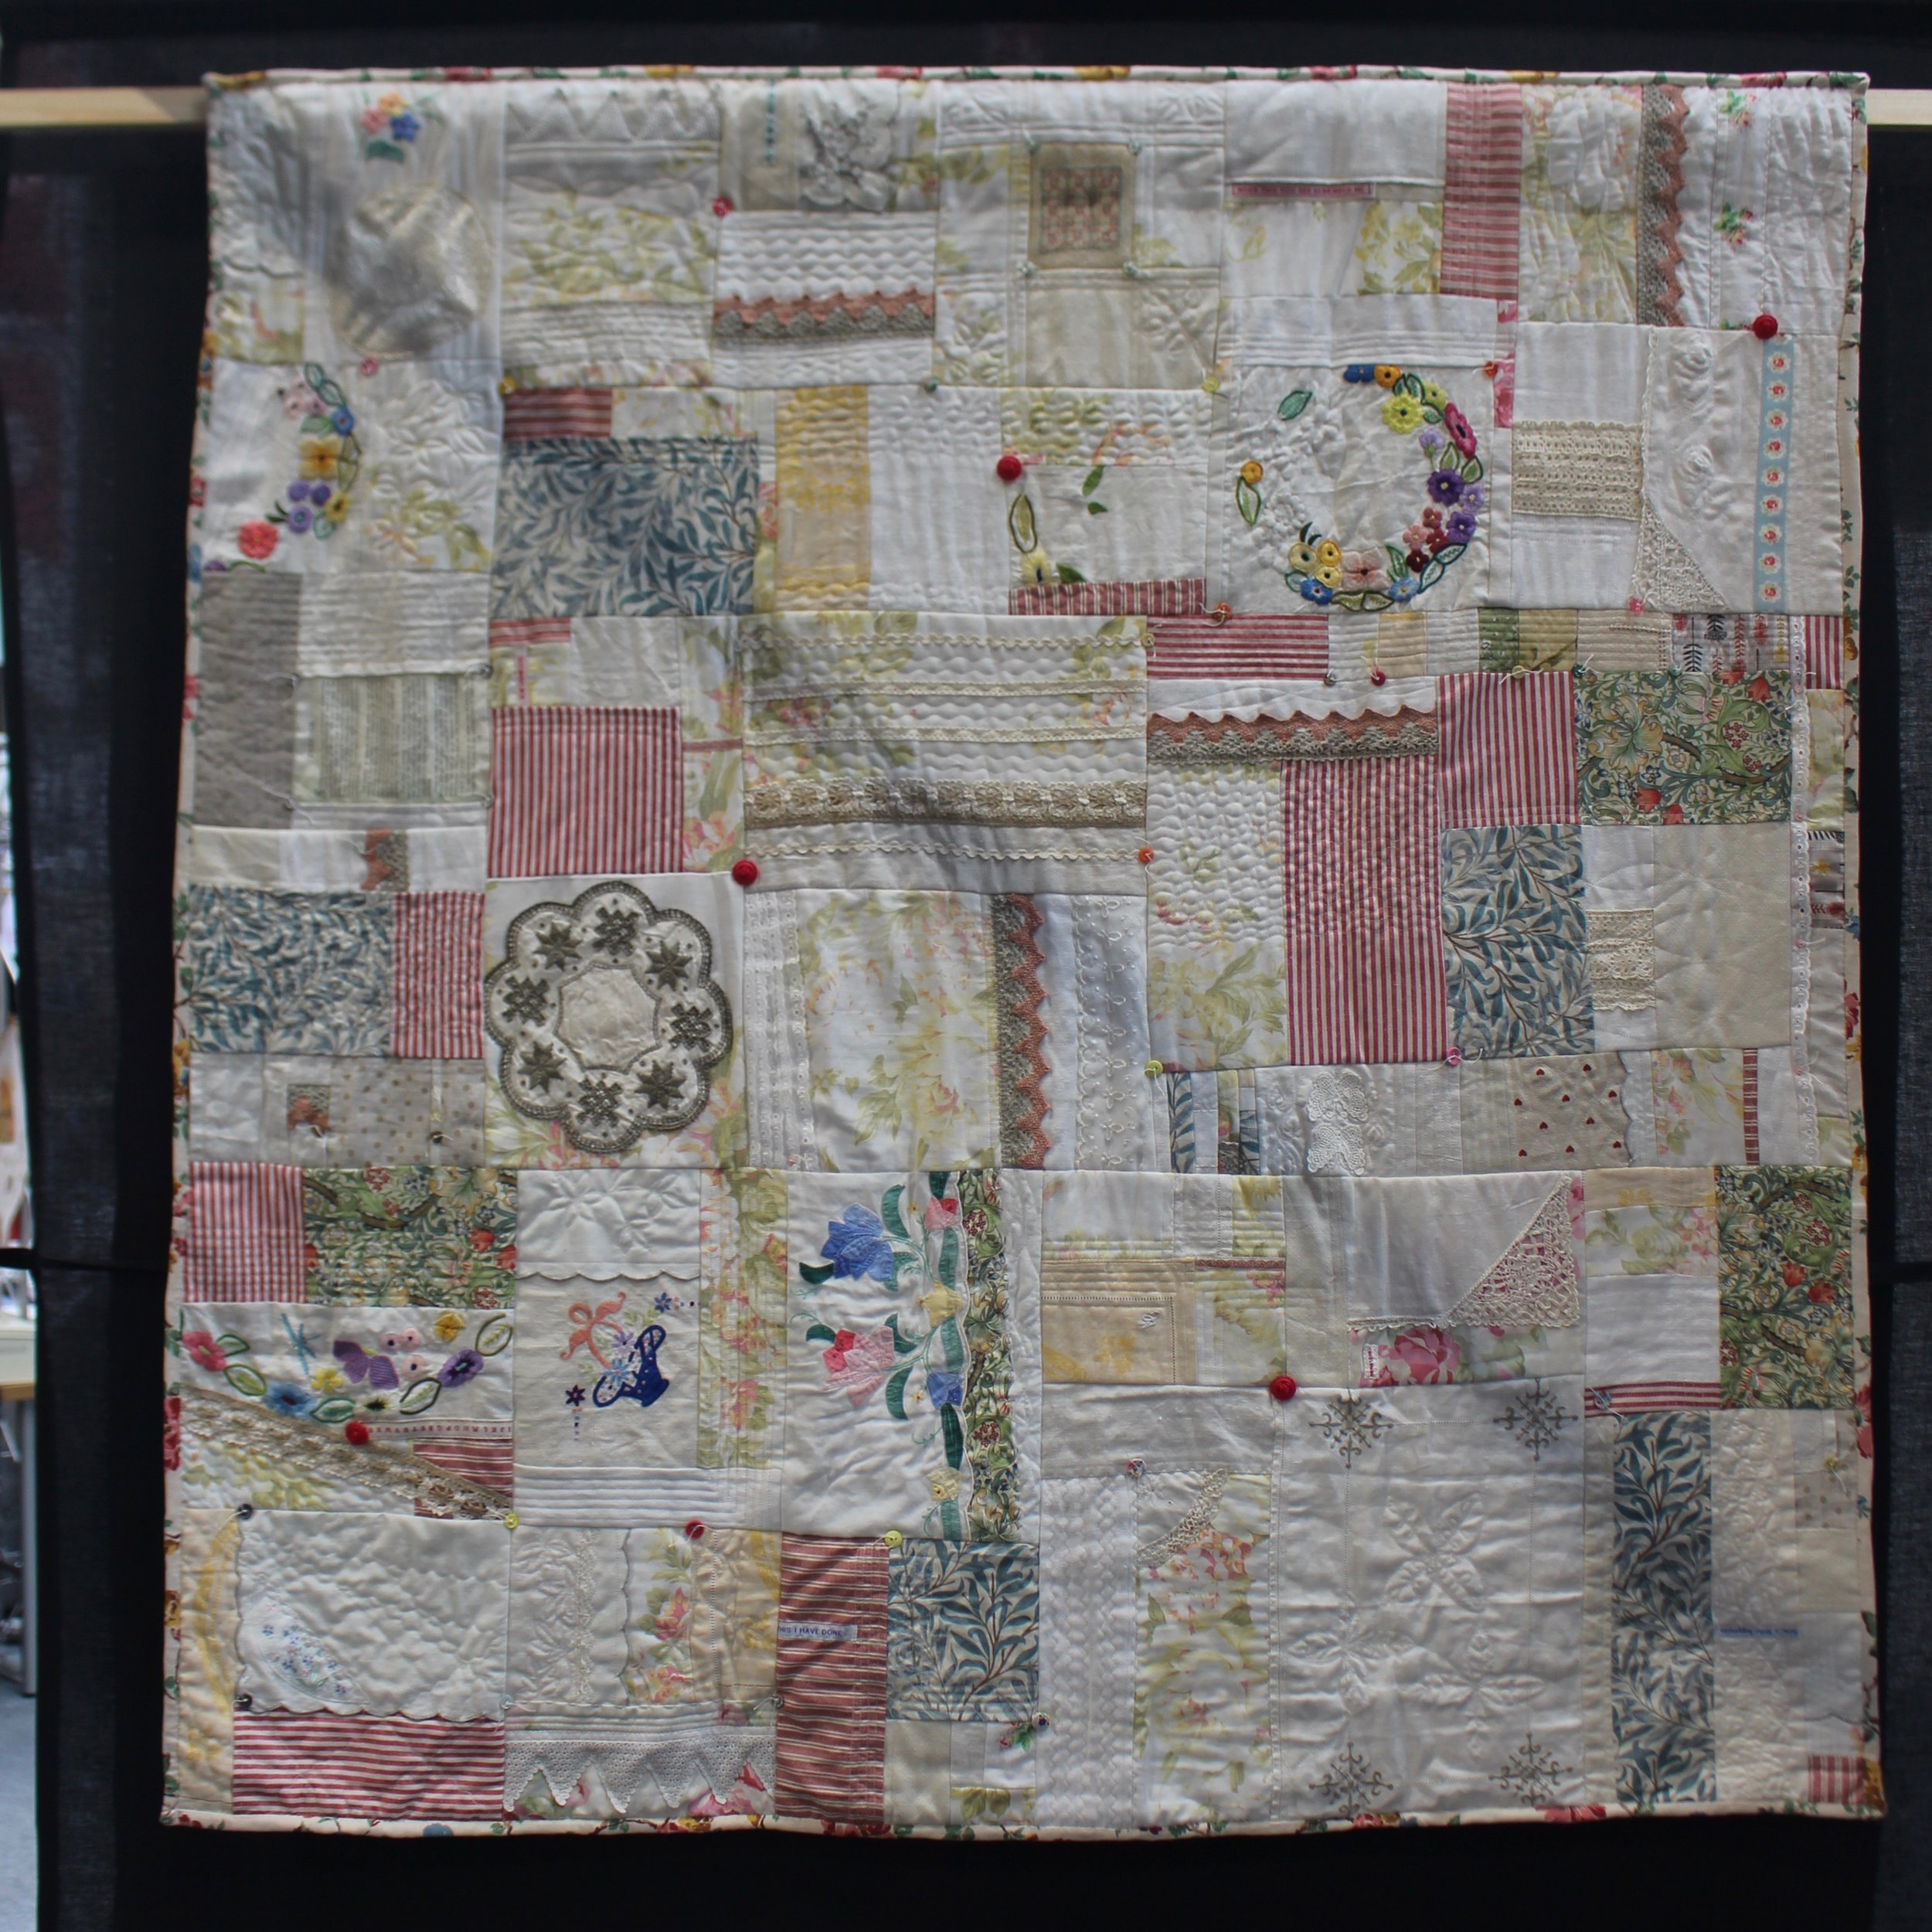 Grandma's chintz counterpane, by Moira Ackers, Festival of Quilts 2019